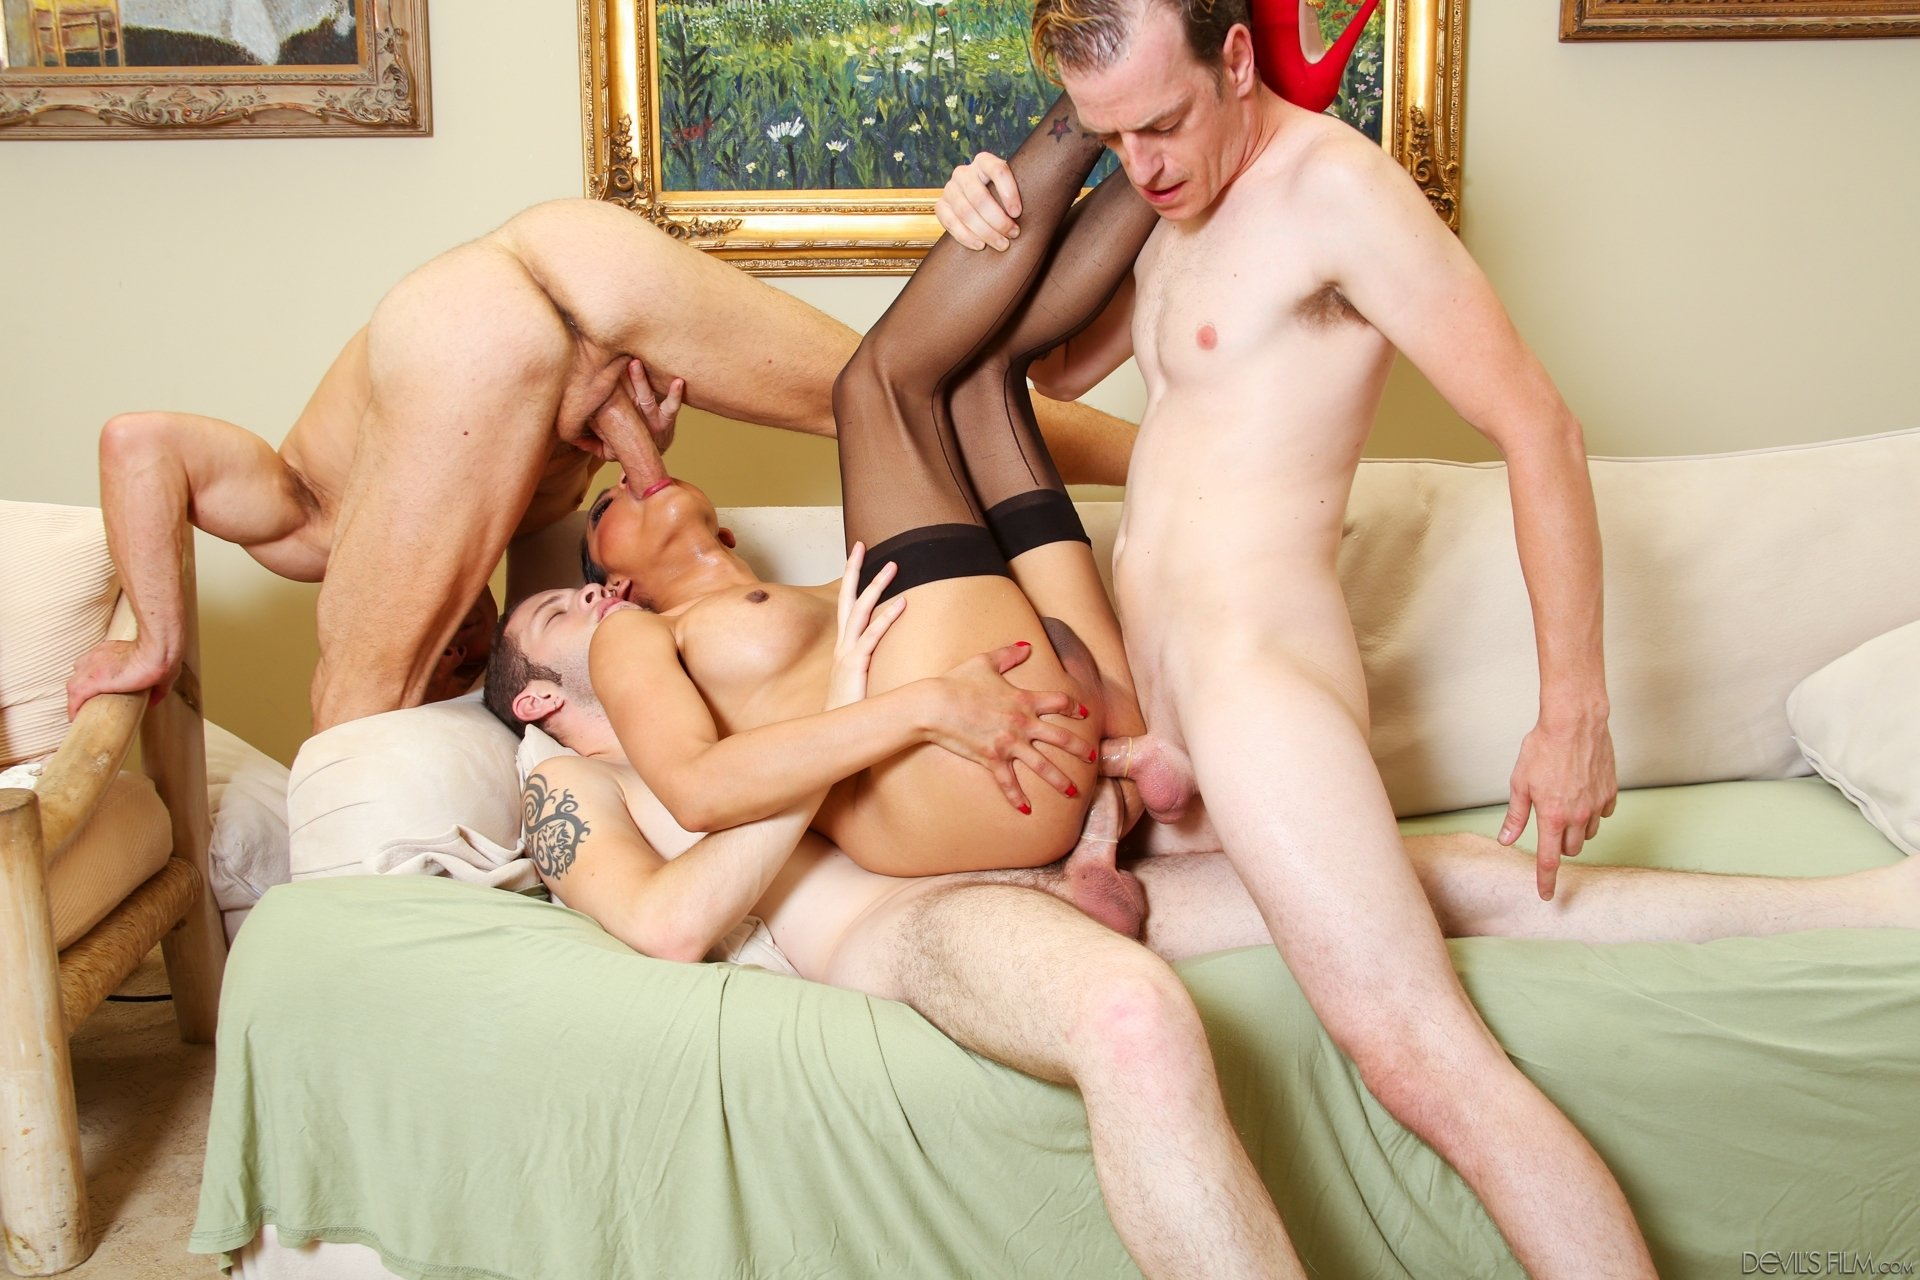 Doble anal con transexual y bisexuales